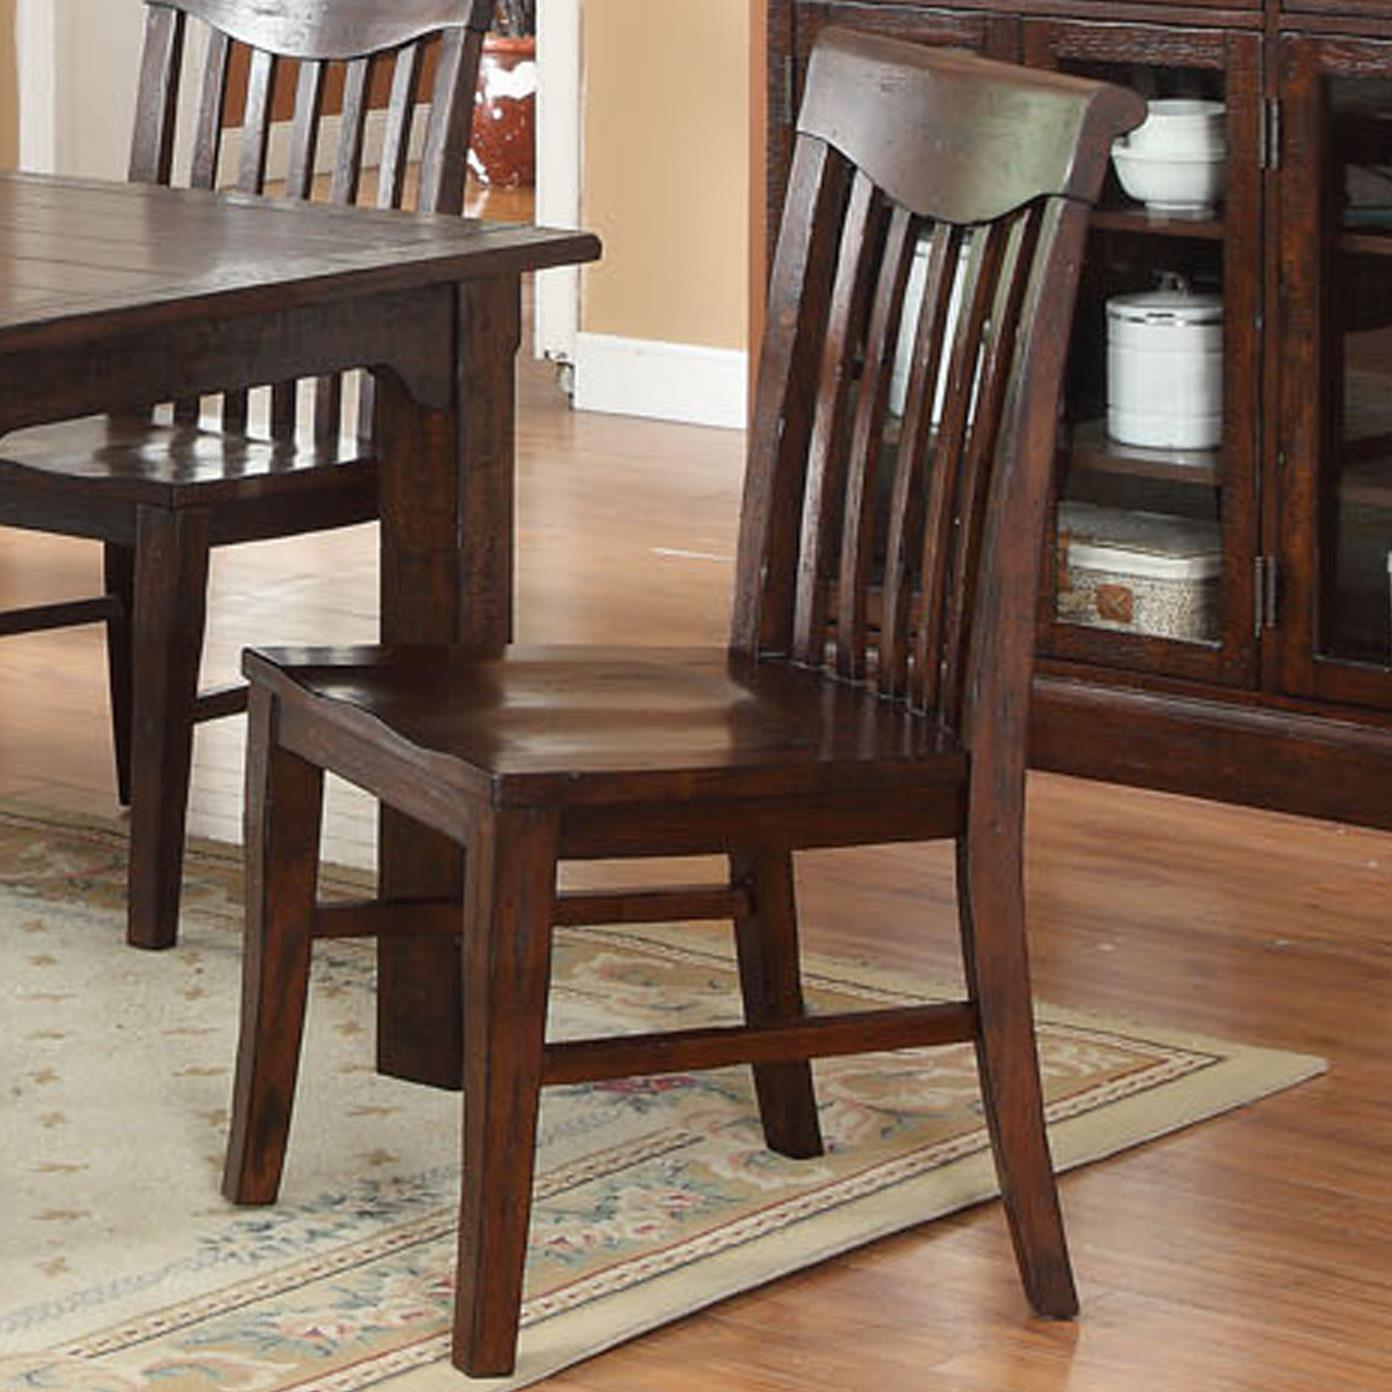 E C I Furniture Gettysburg 1475 05 S Dining Slat Back Side Chair Becker Furniture World